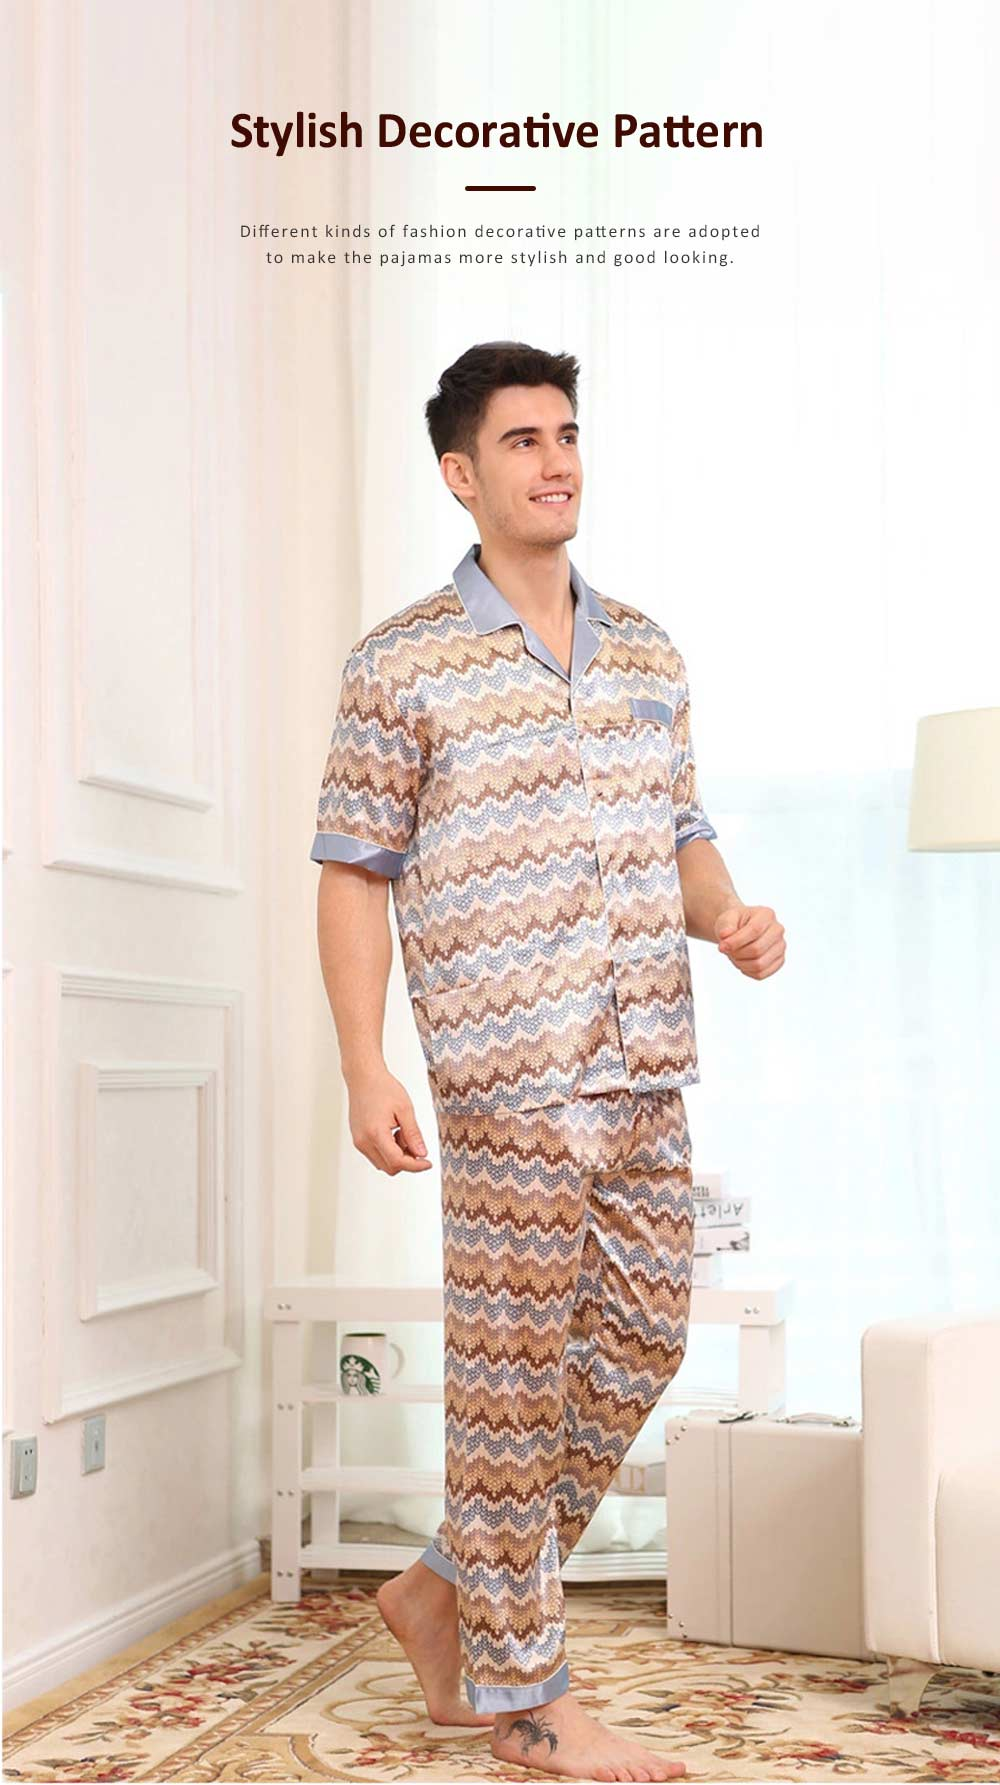 Spring Summer Artificial Silk Men Short Sleeve Pajamas Set, Delicate Elegant Pattern Satin Long Sleepwear Suit 4